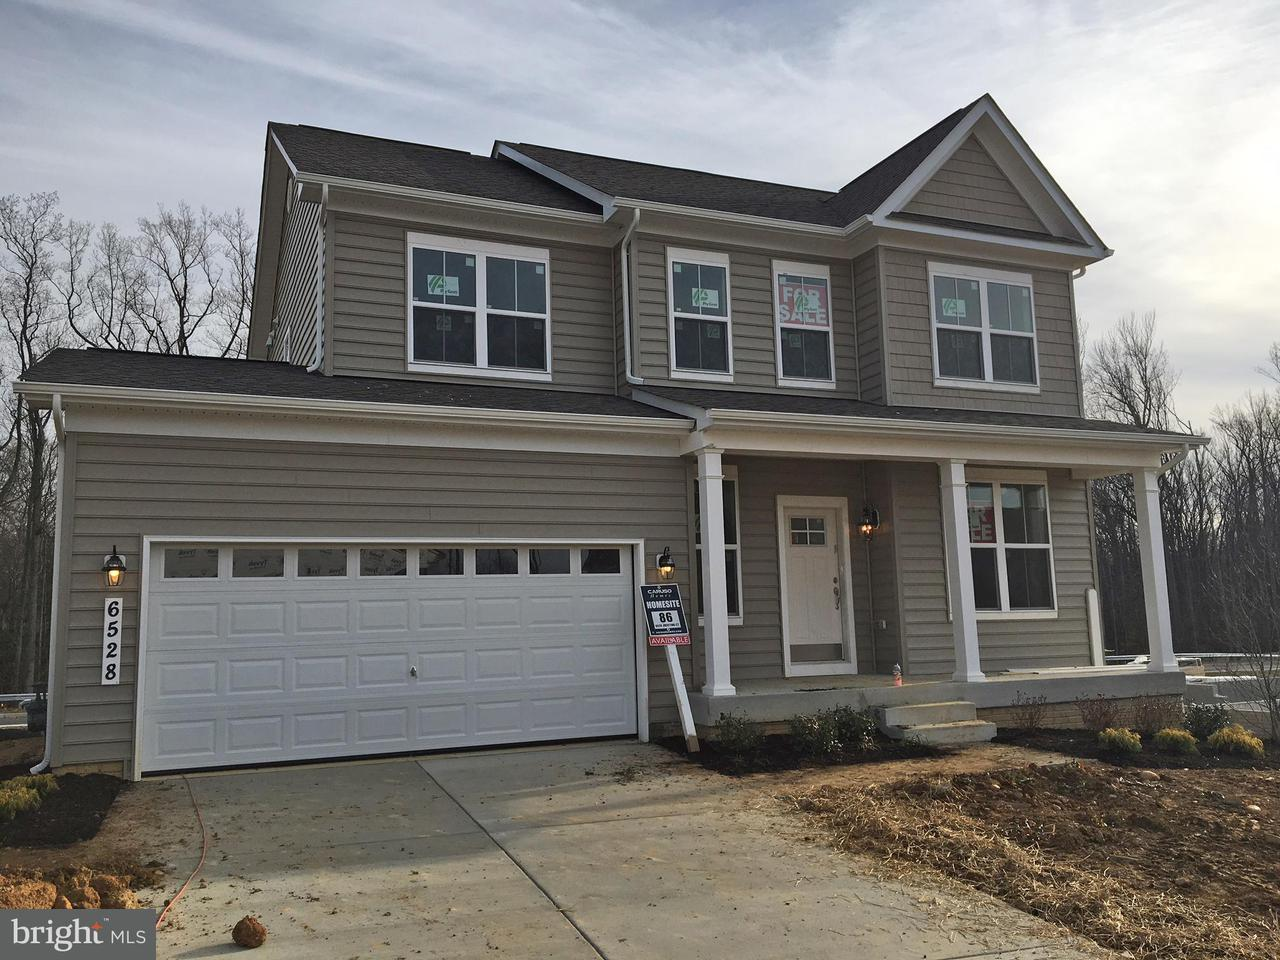 Vivienda unifamiliar por un Venta en 6528 JOUSTING Court 6528 JOUSTING Court Indian Head, Maryland 20640 Estados Unidos